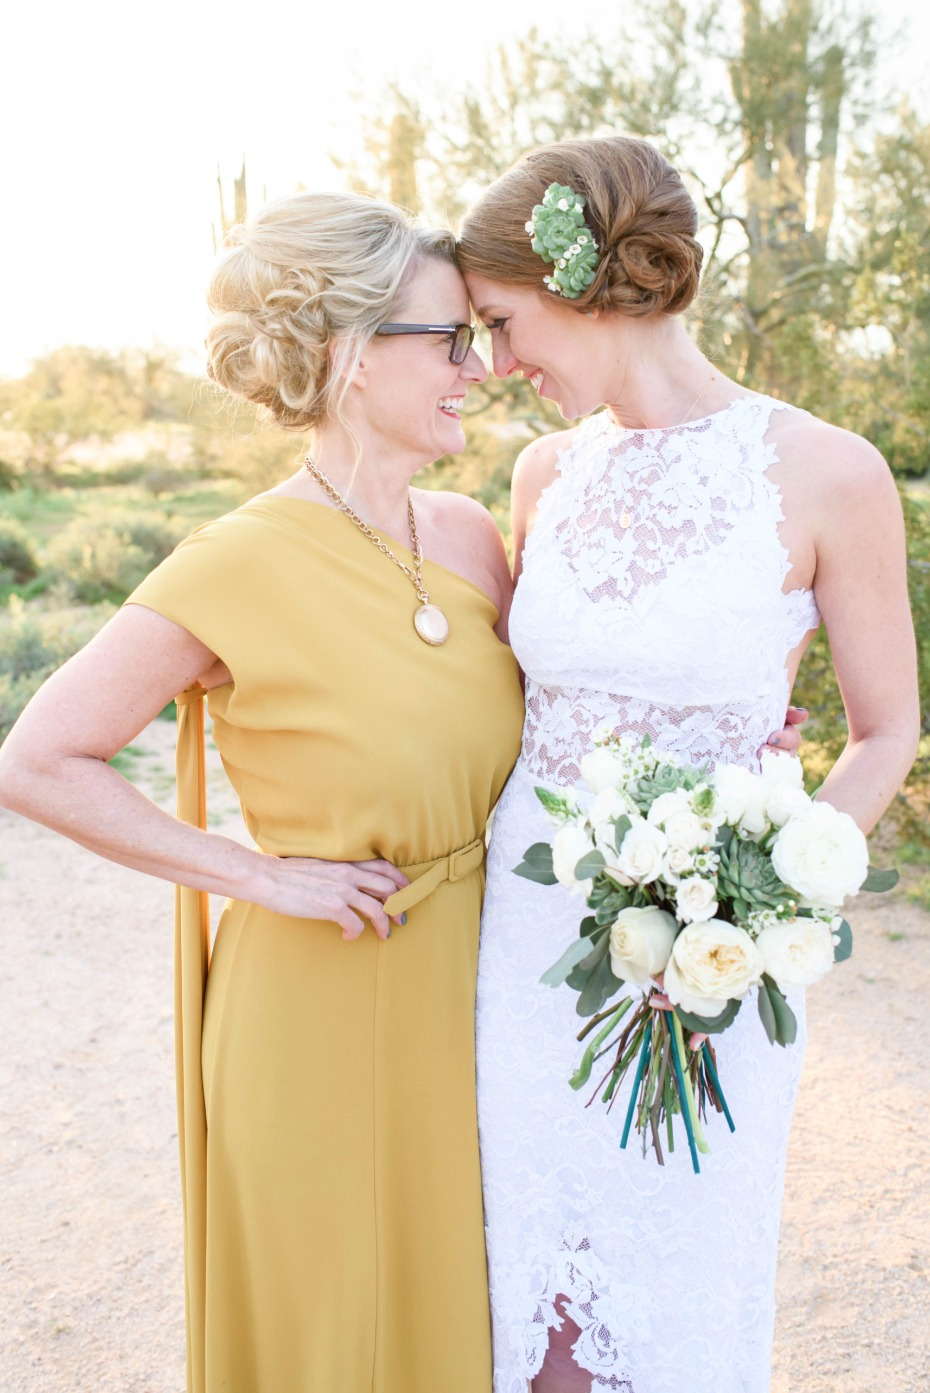 Cute portrait of the mom and the bride